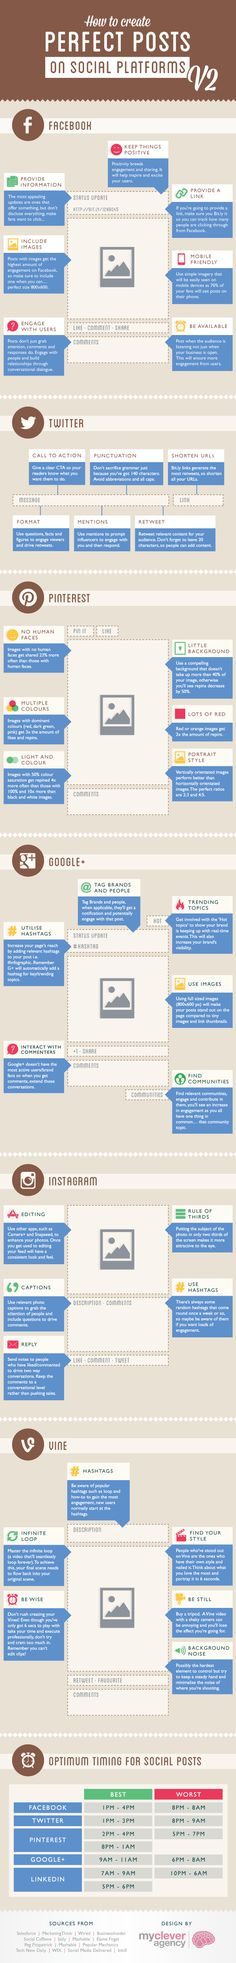 Create the Perfect Vine, Instagram, #Pinterest, Google+, Facebook & Twitter Posts - #Infographic